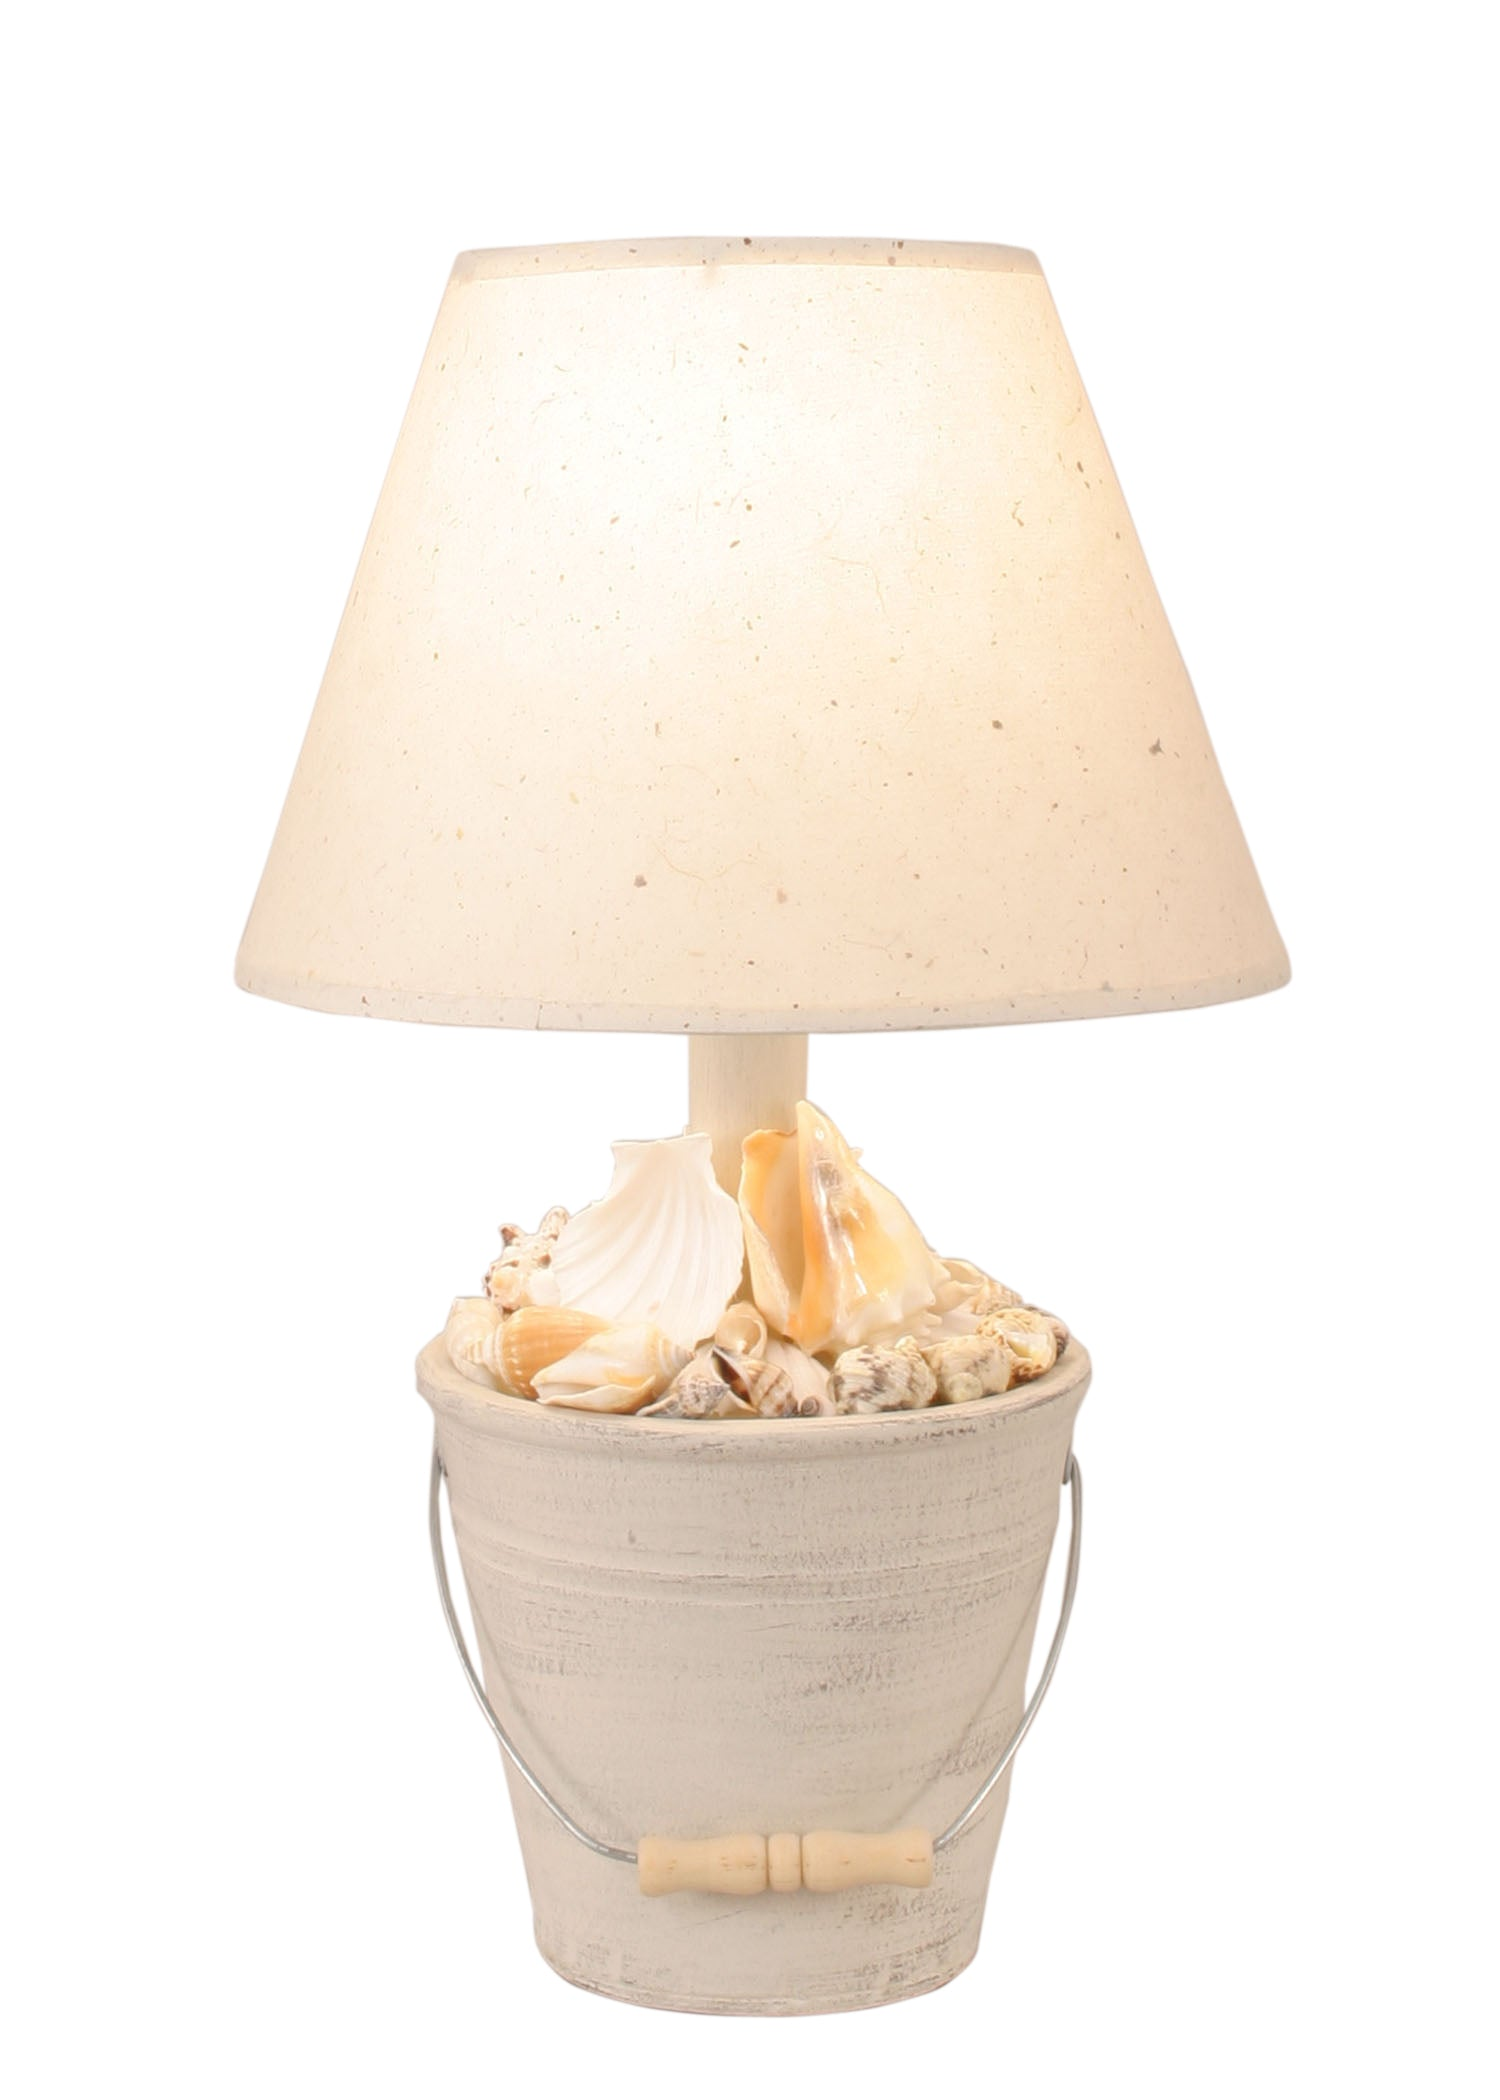 Cottage Mini Bucket of Shells Accent Lamp - Coast Lamp Shop